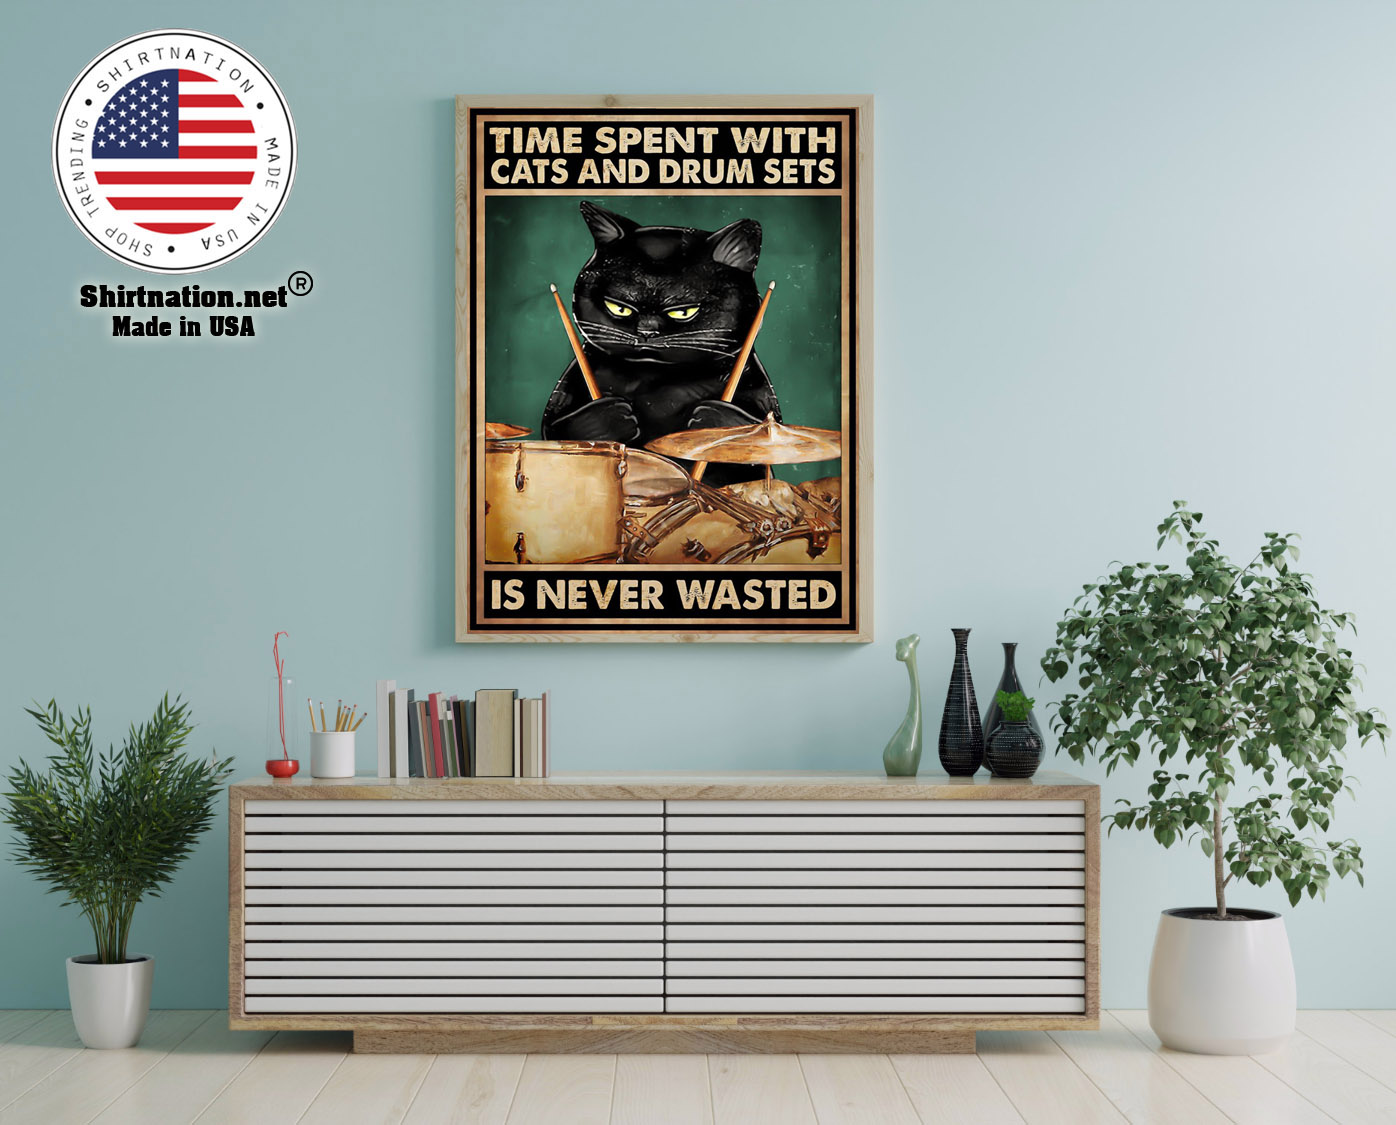 Time spent with cats and drum sets is never wasted poster 16